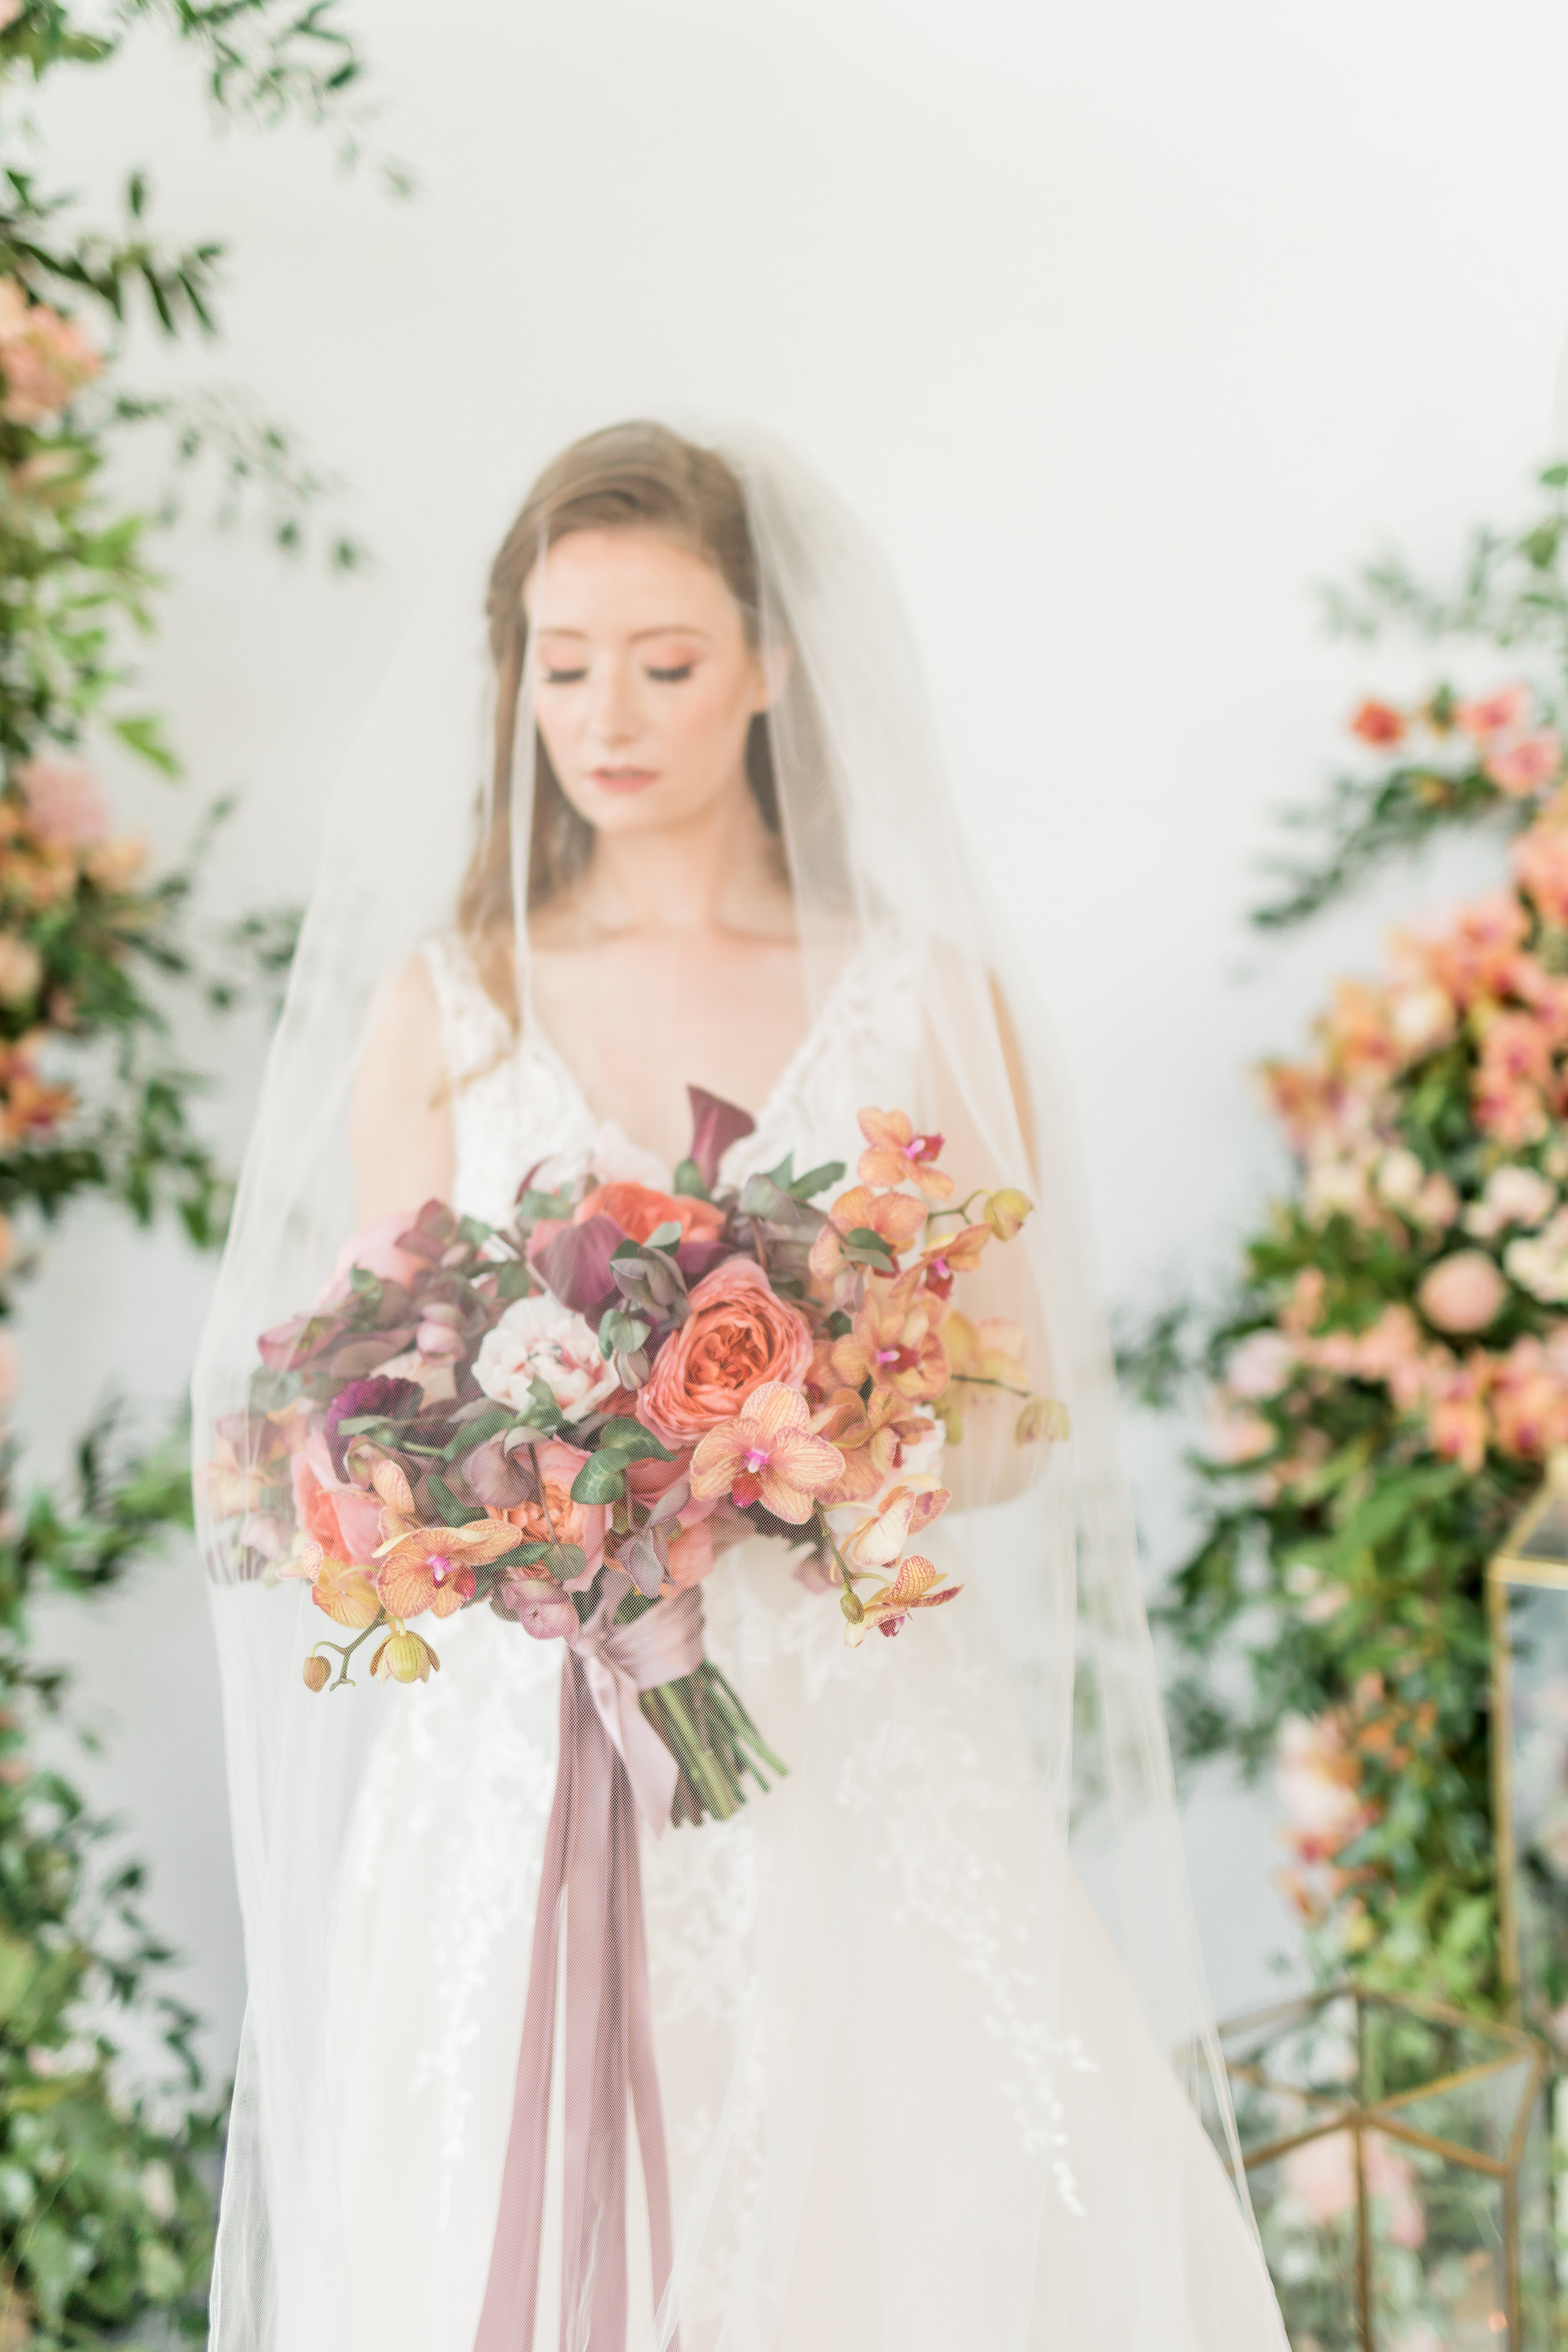 Bride with Coral and Mauve Bouquet